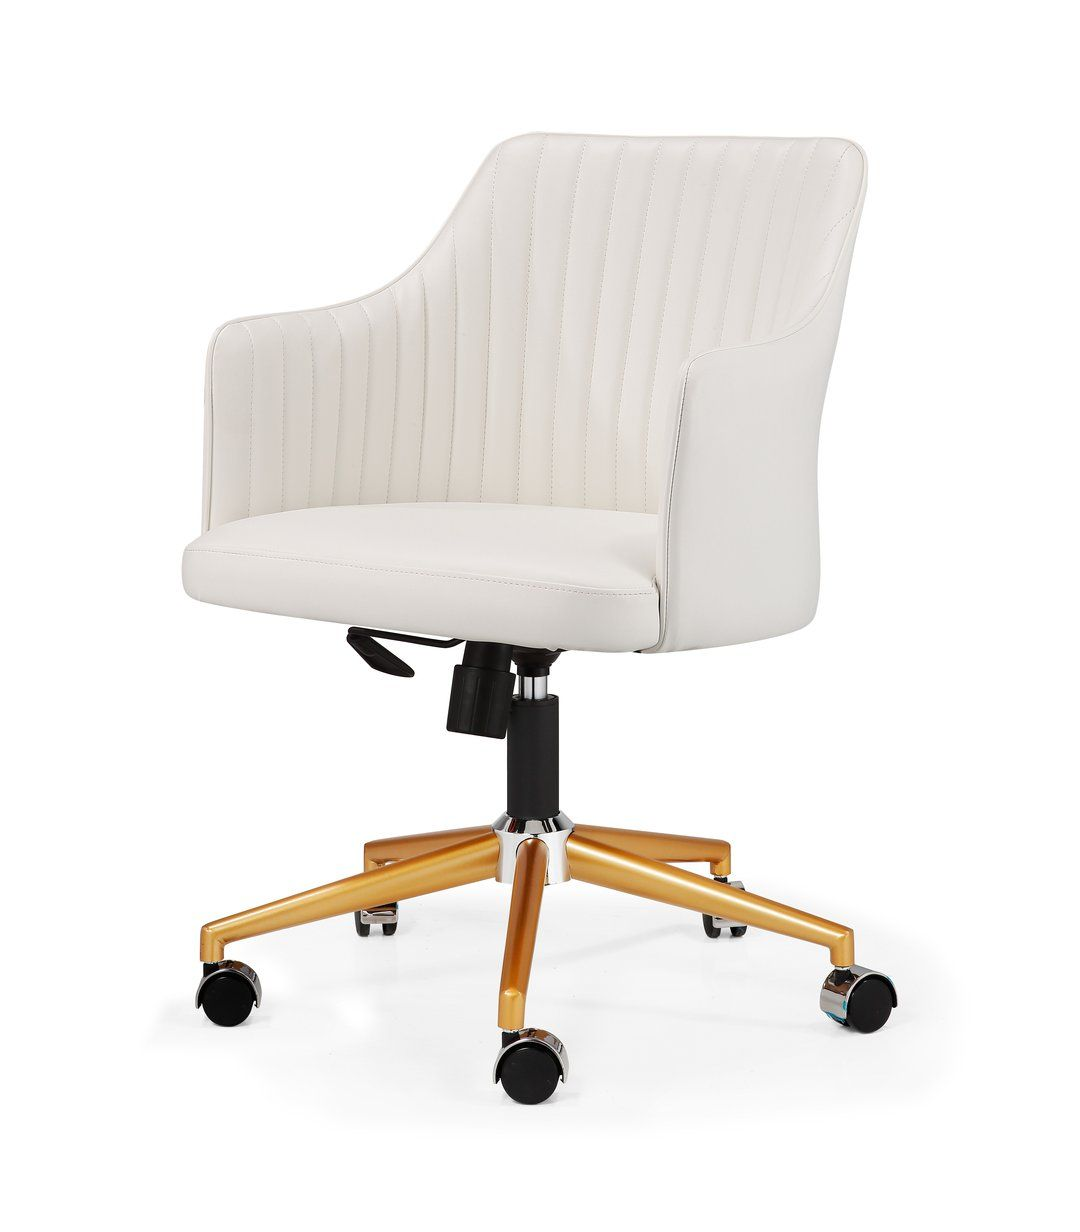 The M64 Is Not Your Standard Office Chair Its Curvaceous Seat And Ribbed Back Adds A Modern Touch To Conference Rooms And Task Chair Modern Office Chair Chair